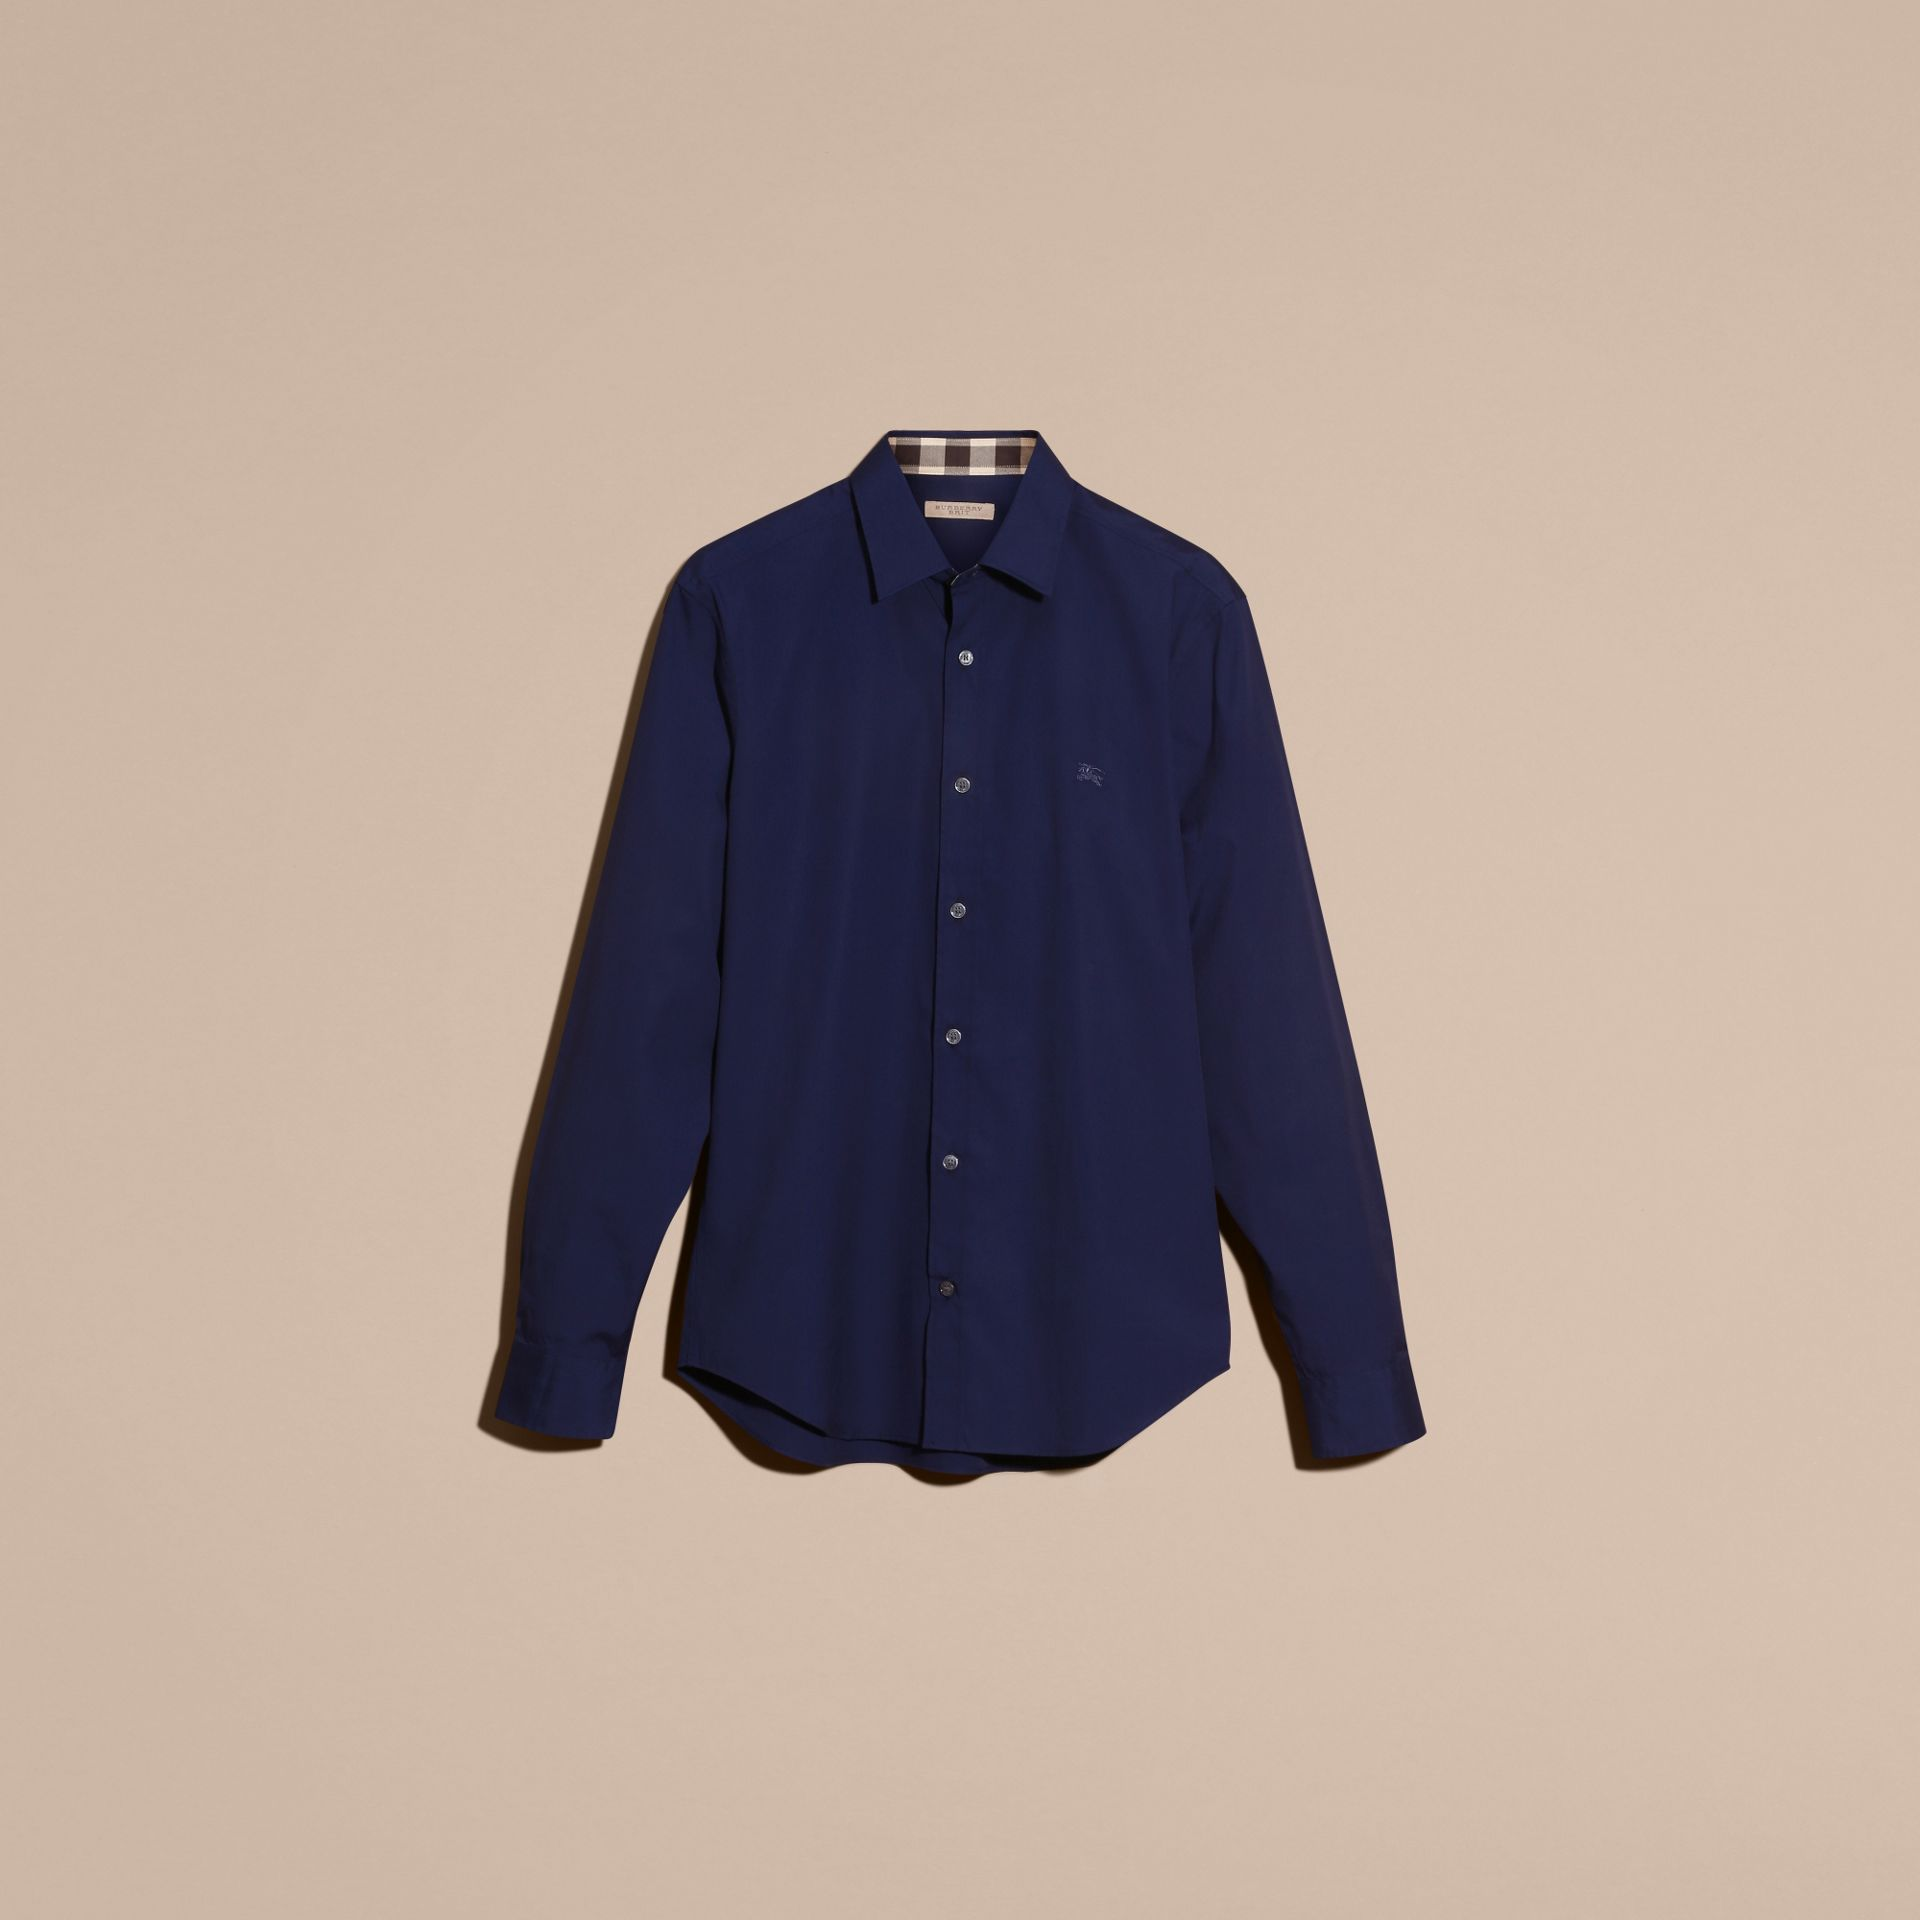 Indigo blue Check Detail Stretch Cotton Poplin Shirt Indigo Blue - gallery image 3